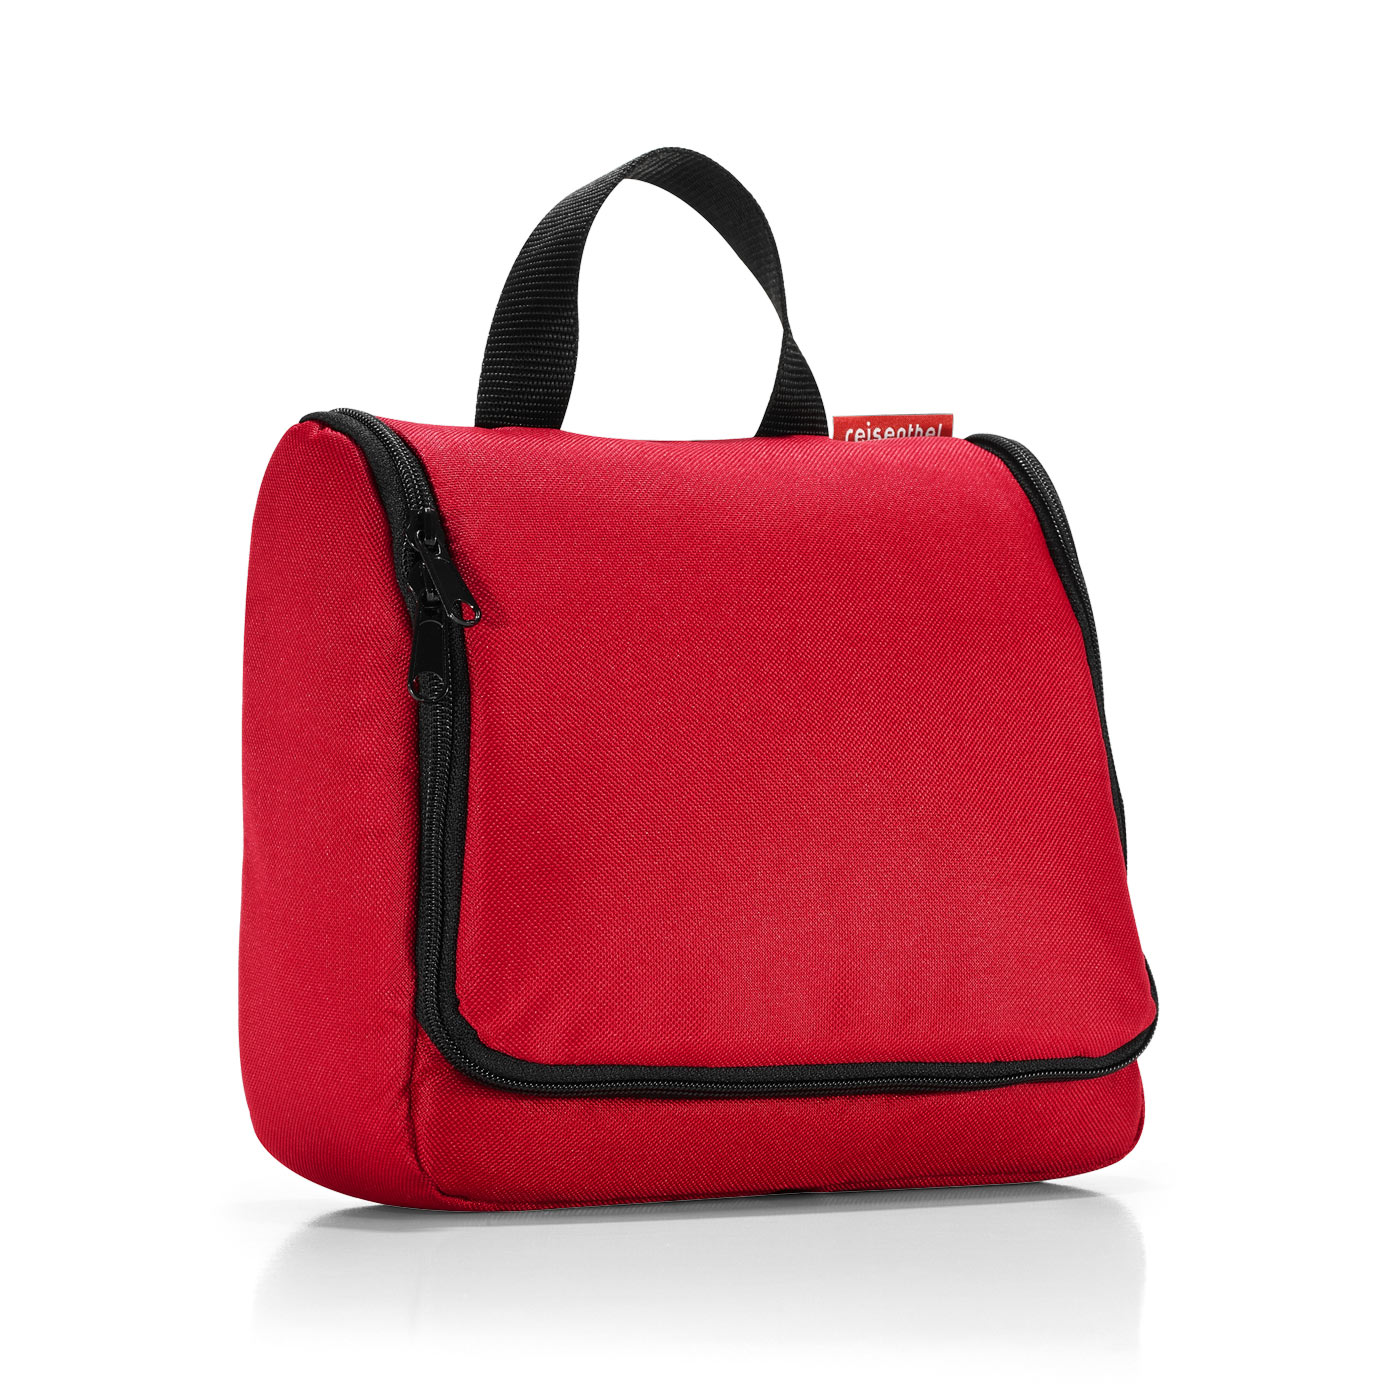 Toiletbag red